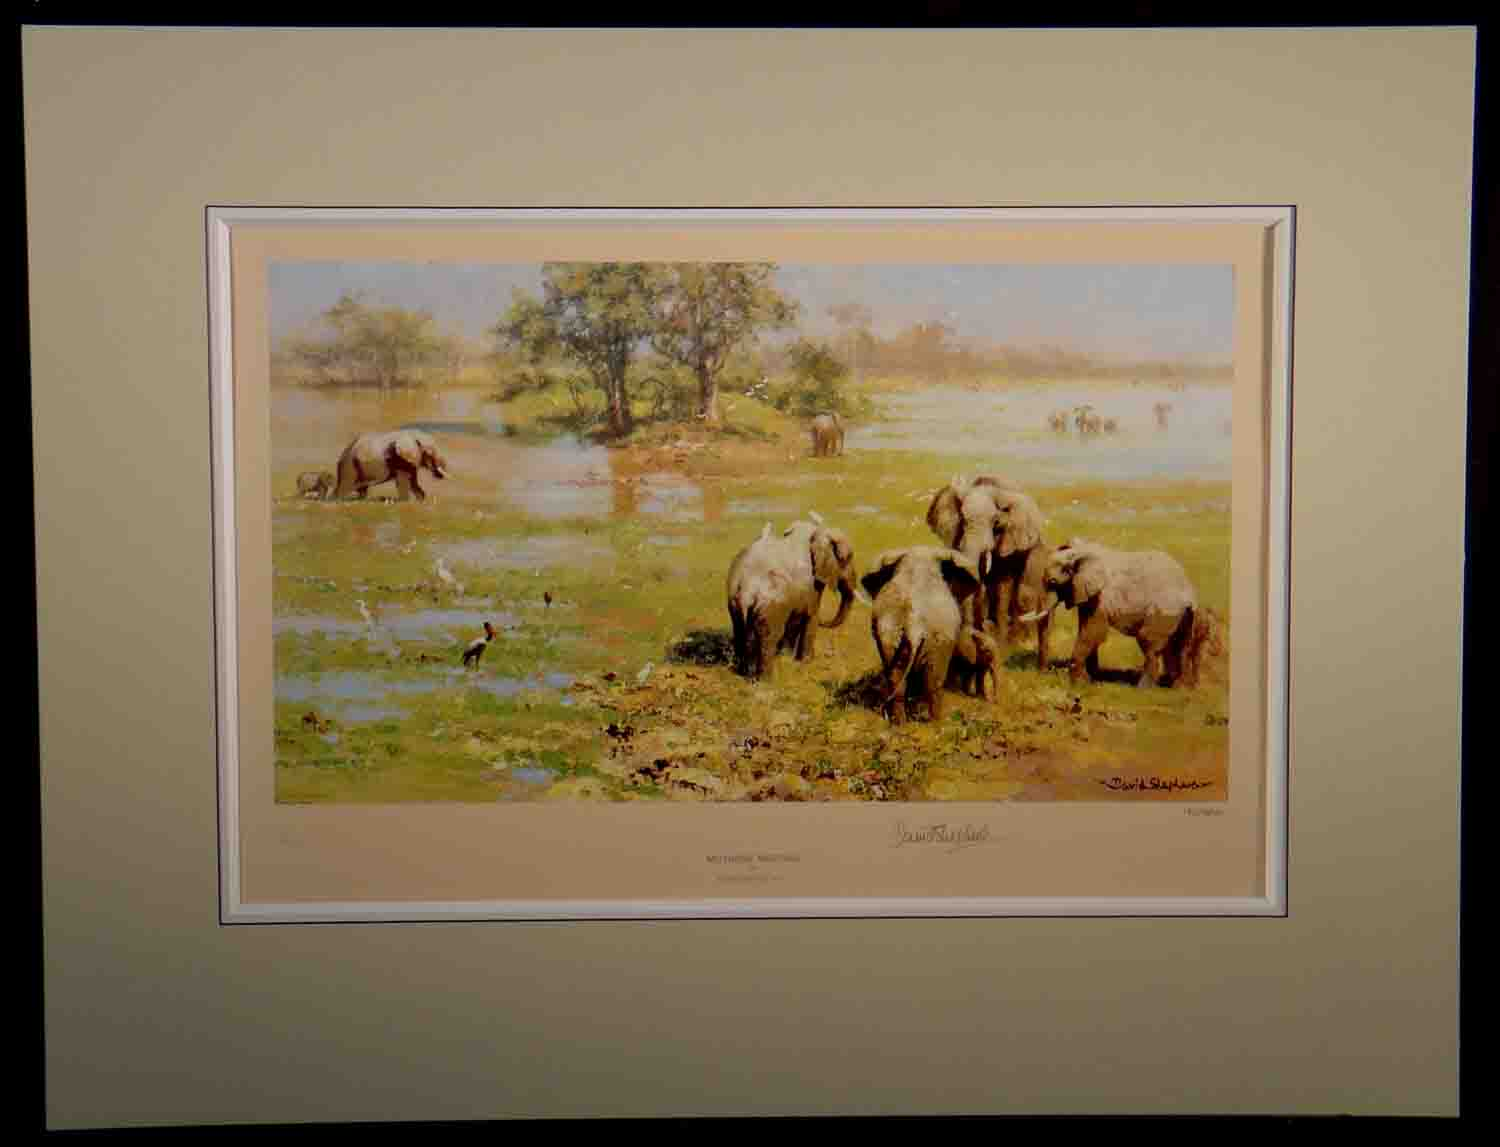 david shepherd, mother's meeting, signed limited edition print